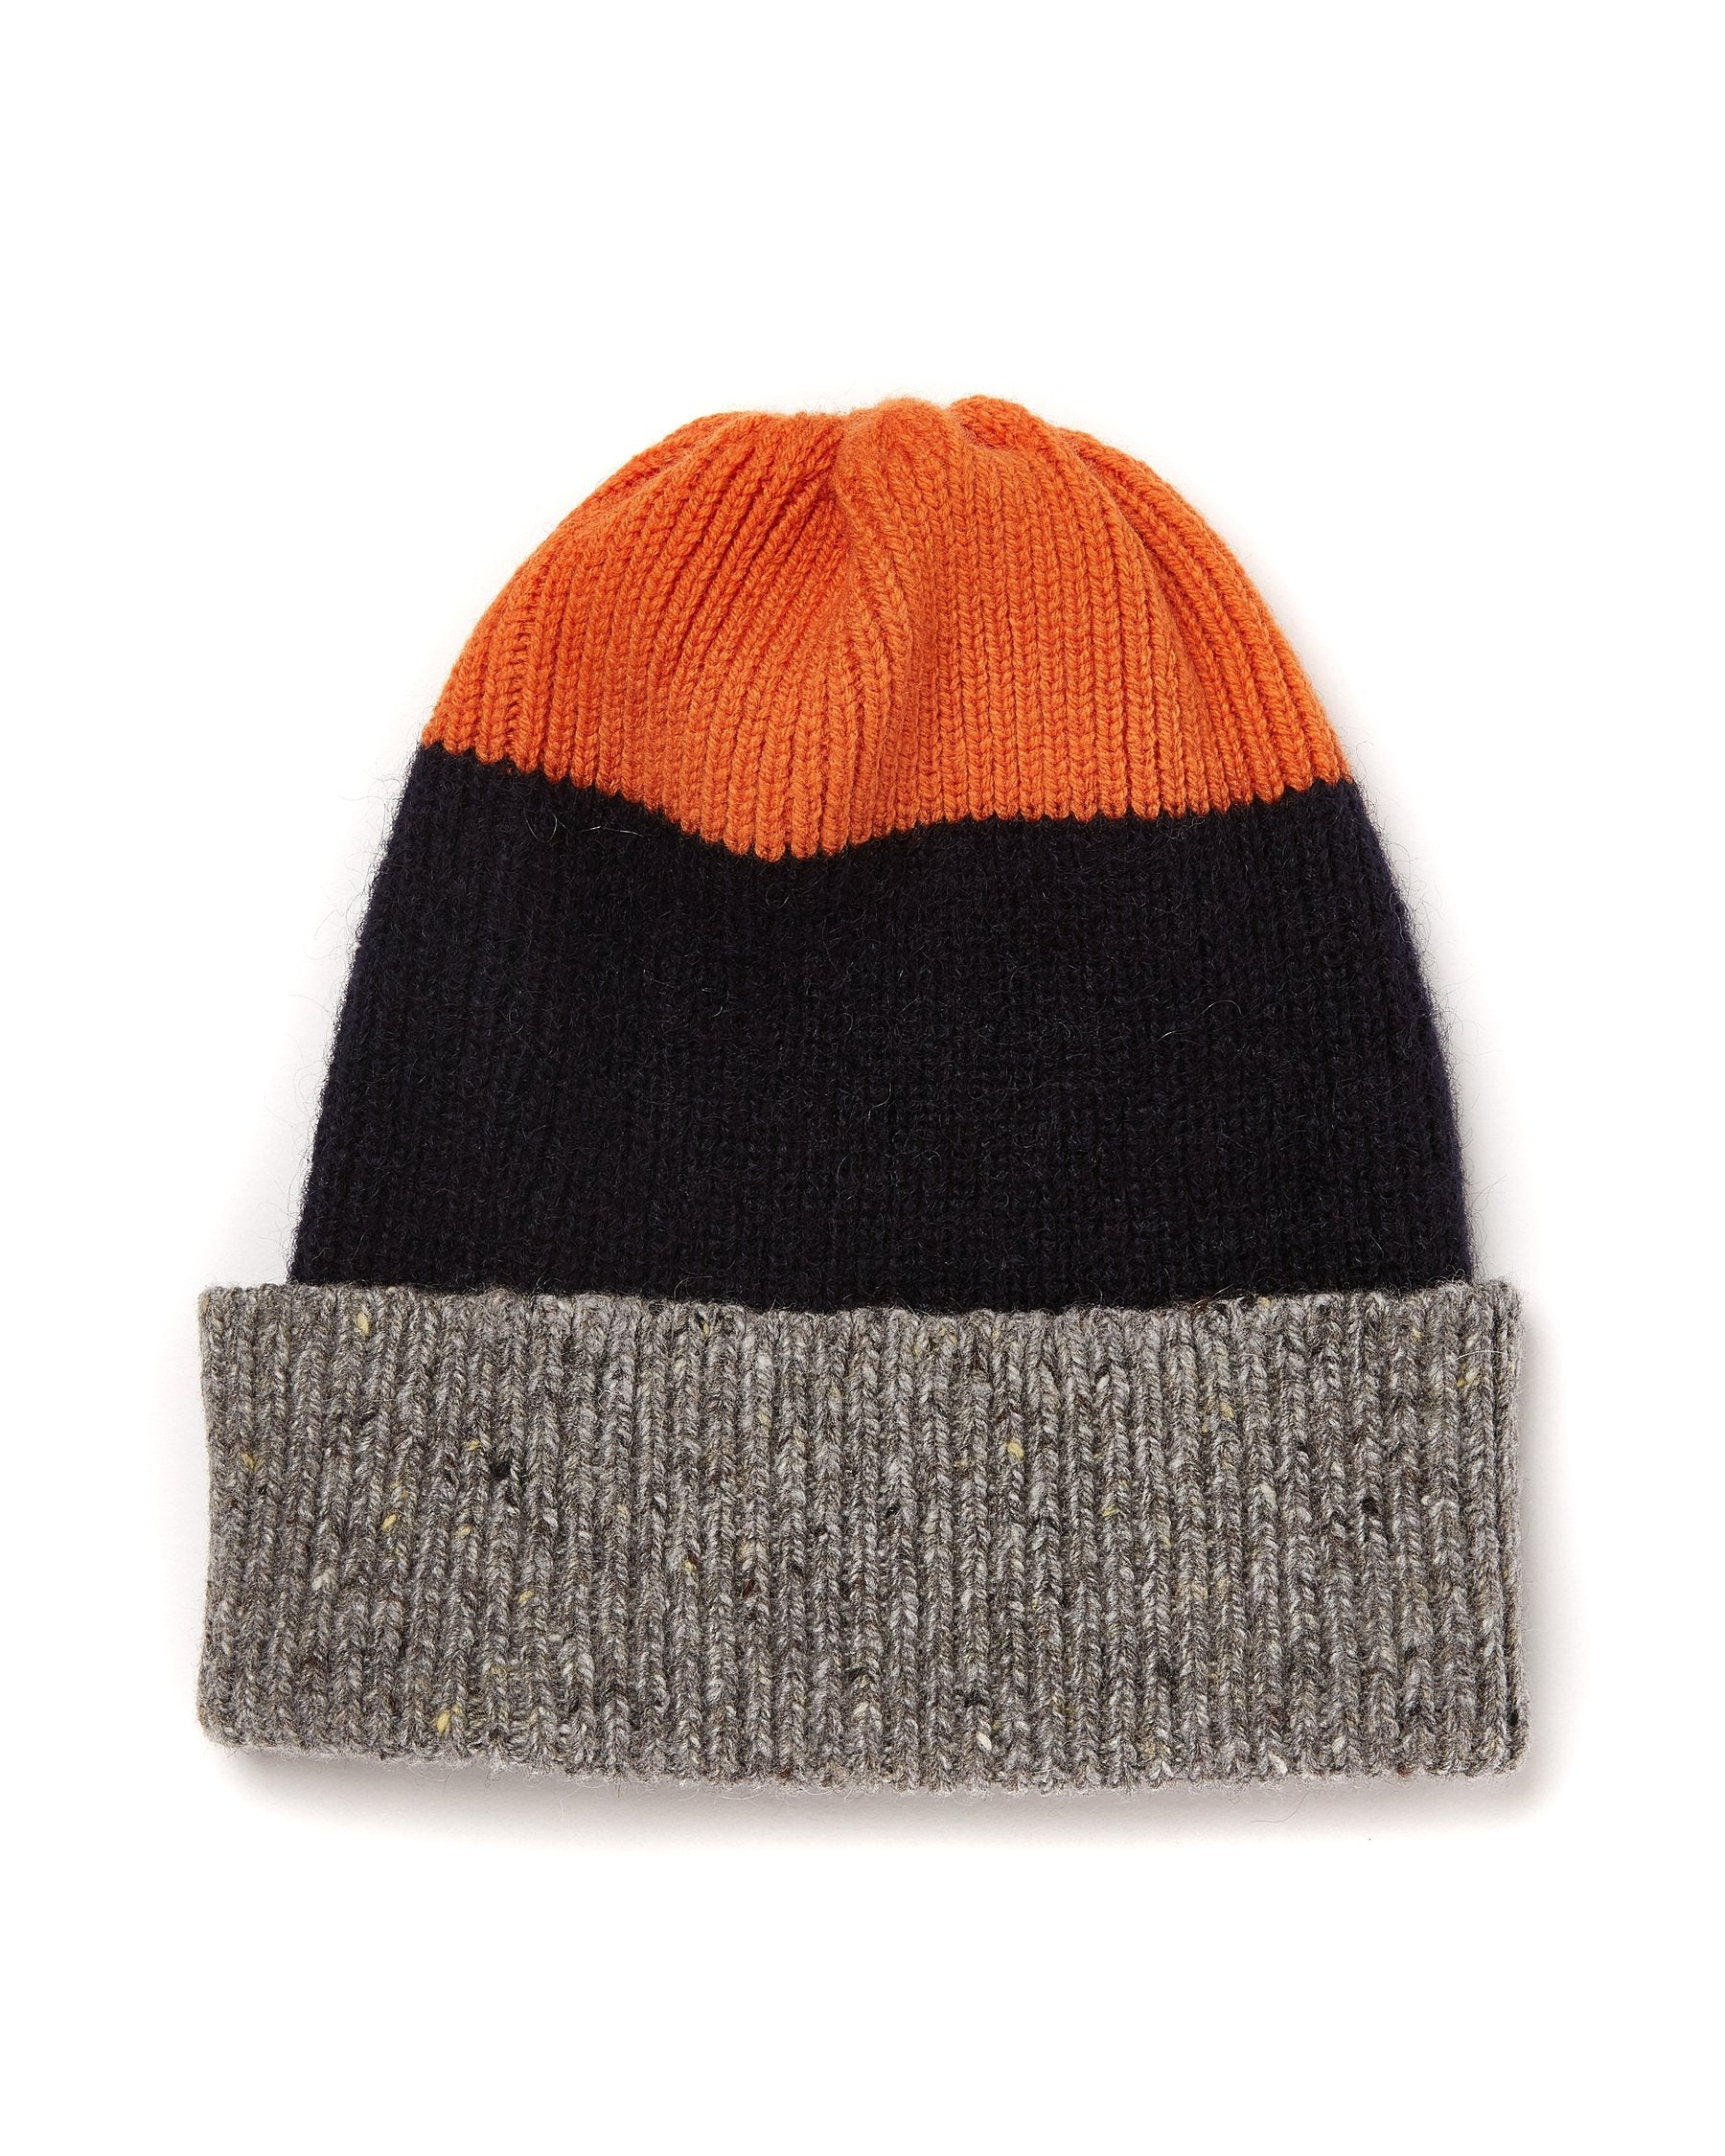 Tri-Colour Watch Cap in Orange, Blue and Grey